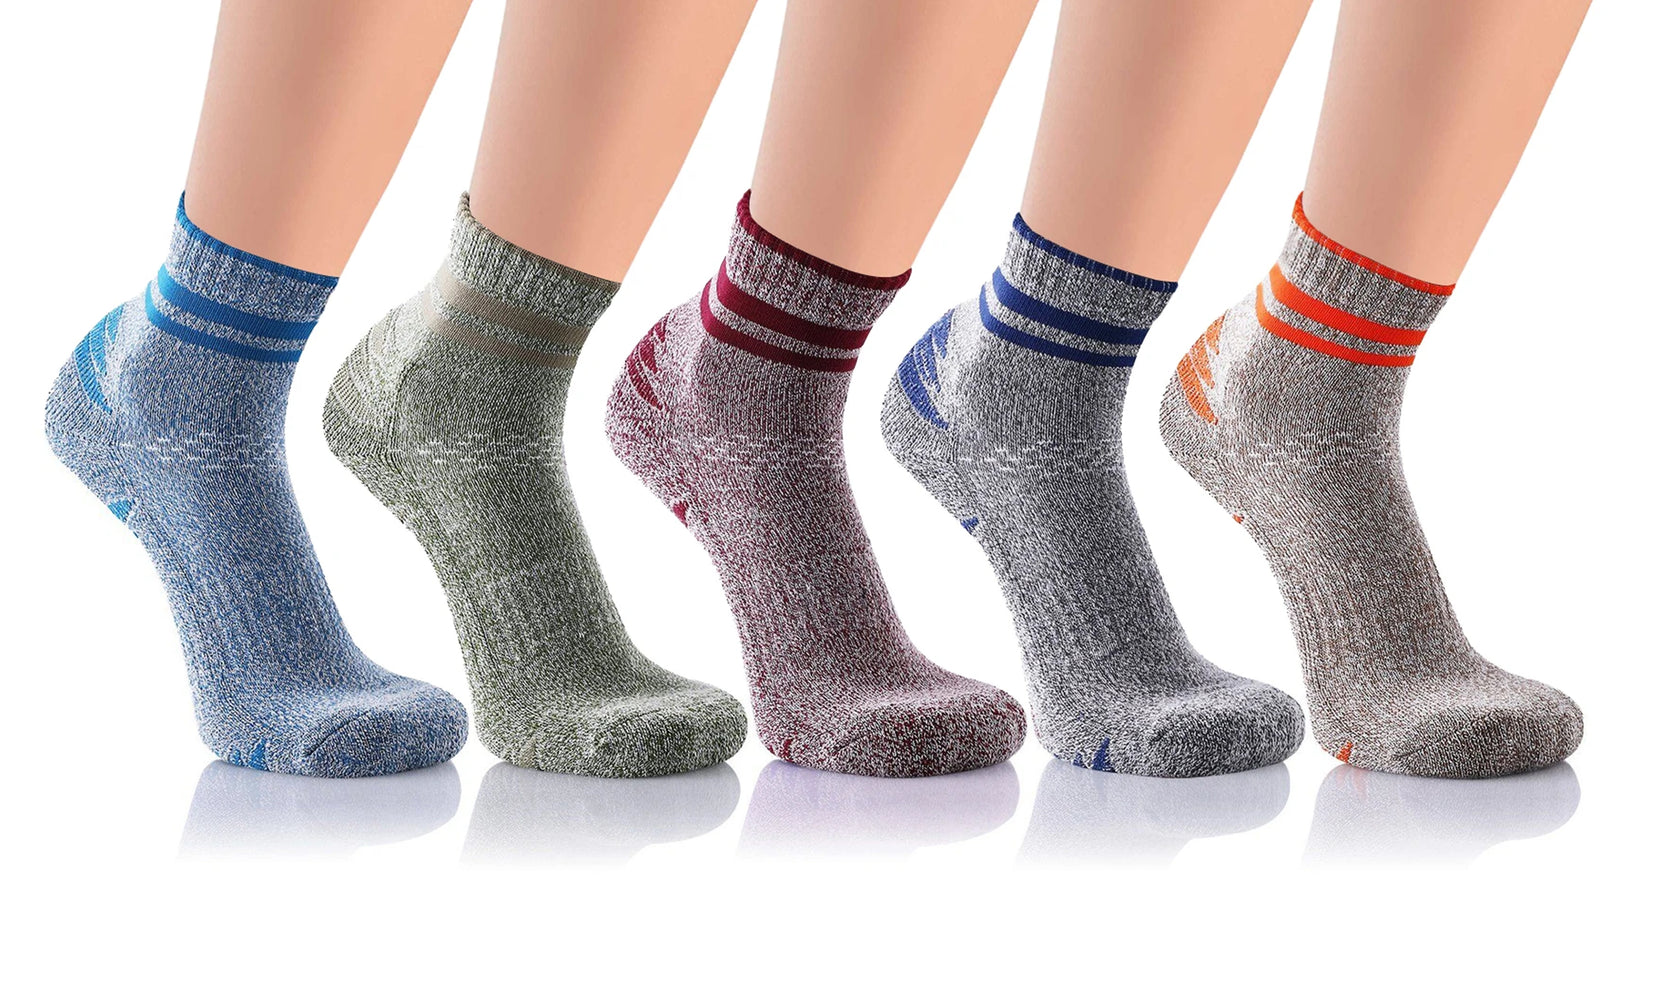 5-Pairs : Unisex Ultra-Support Compression Socks